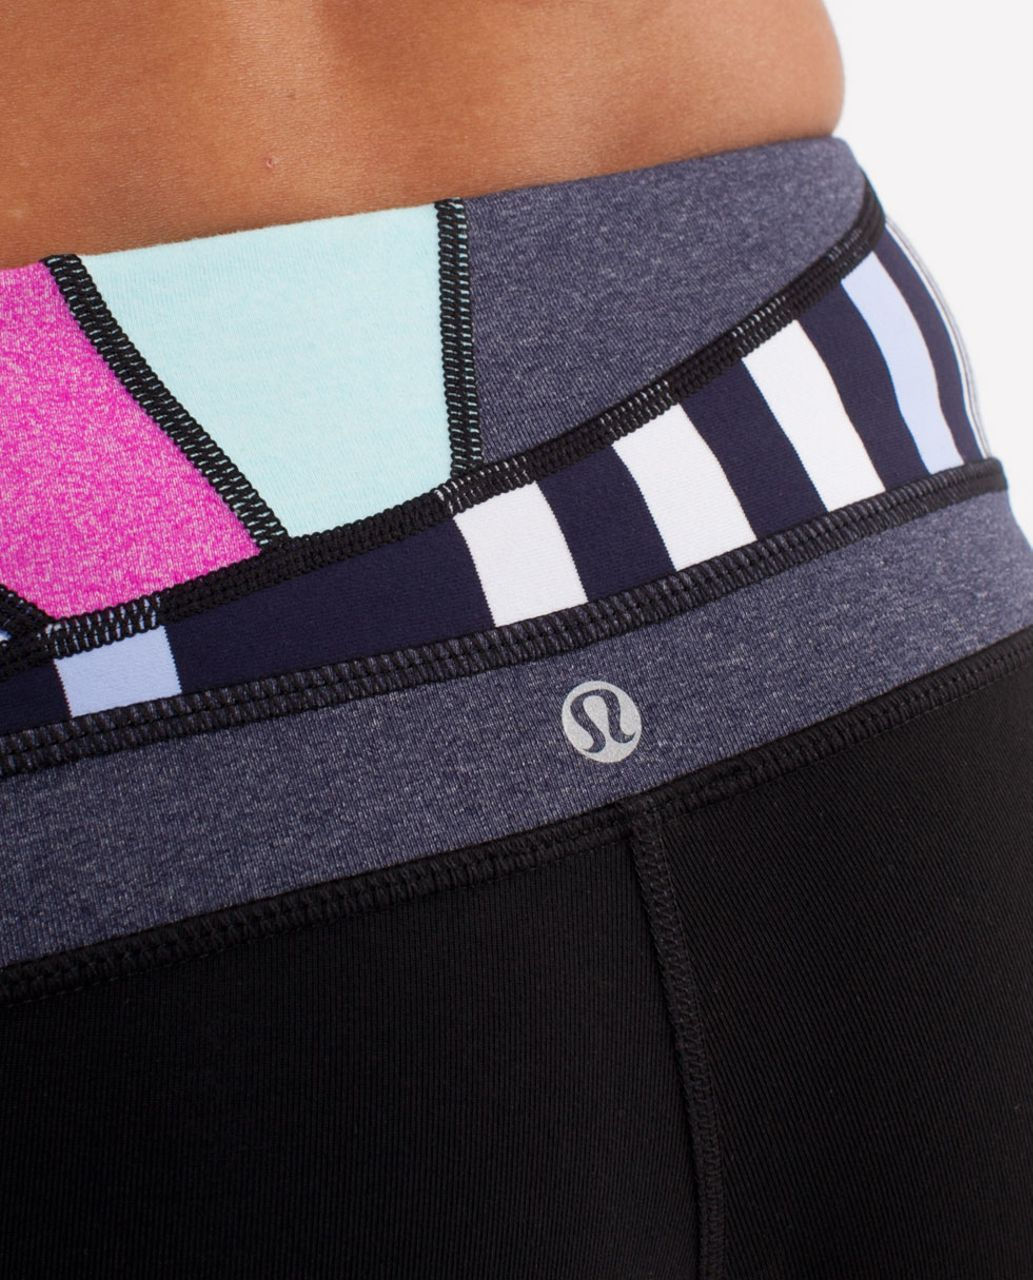 Lululemon Groove Pant (Tall) - Black /  Quilting Spring 13 /  Heathered Deep Indigo